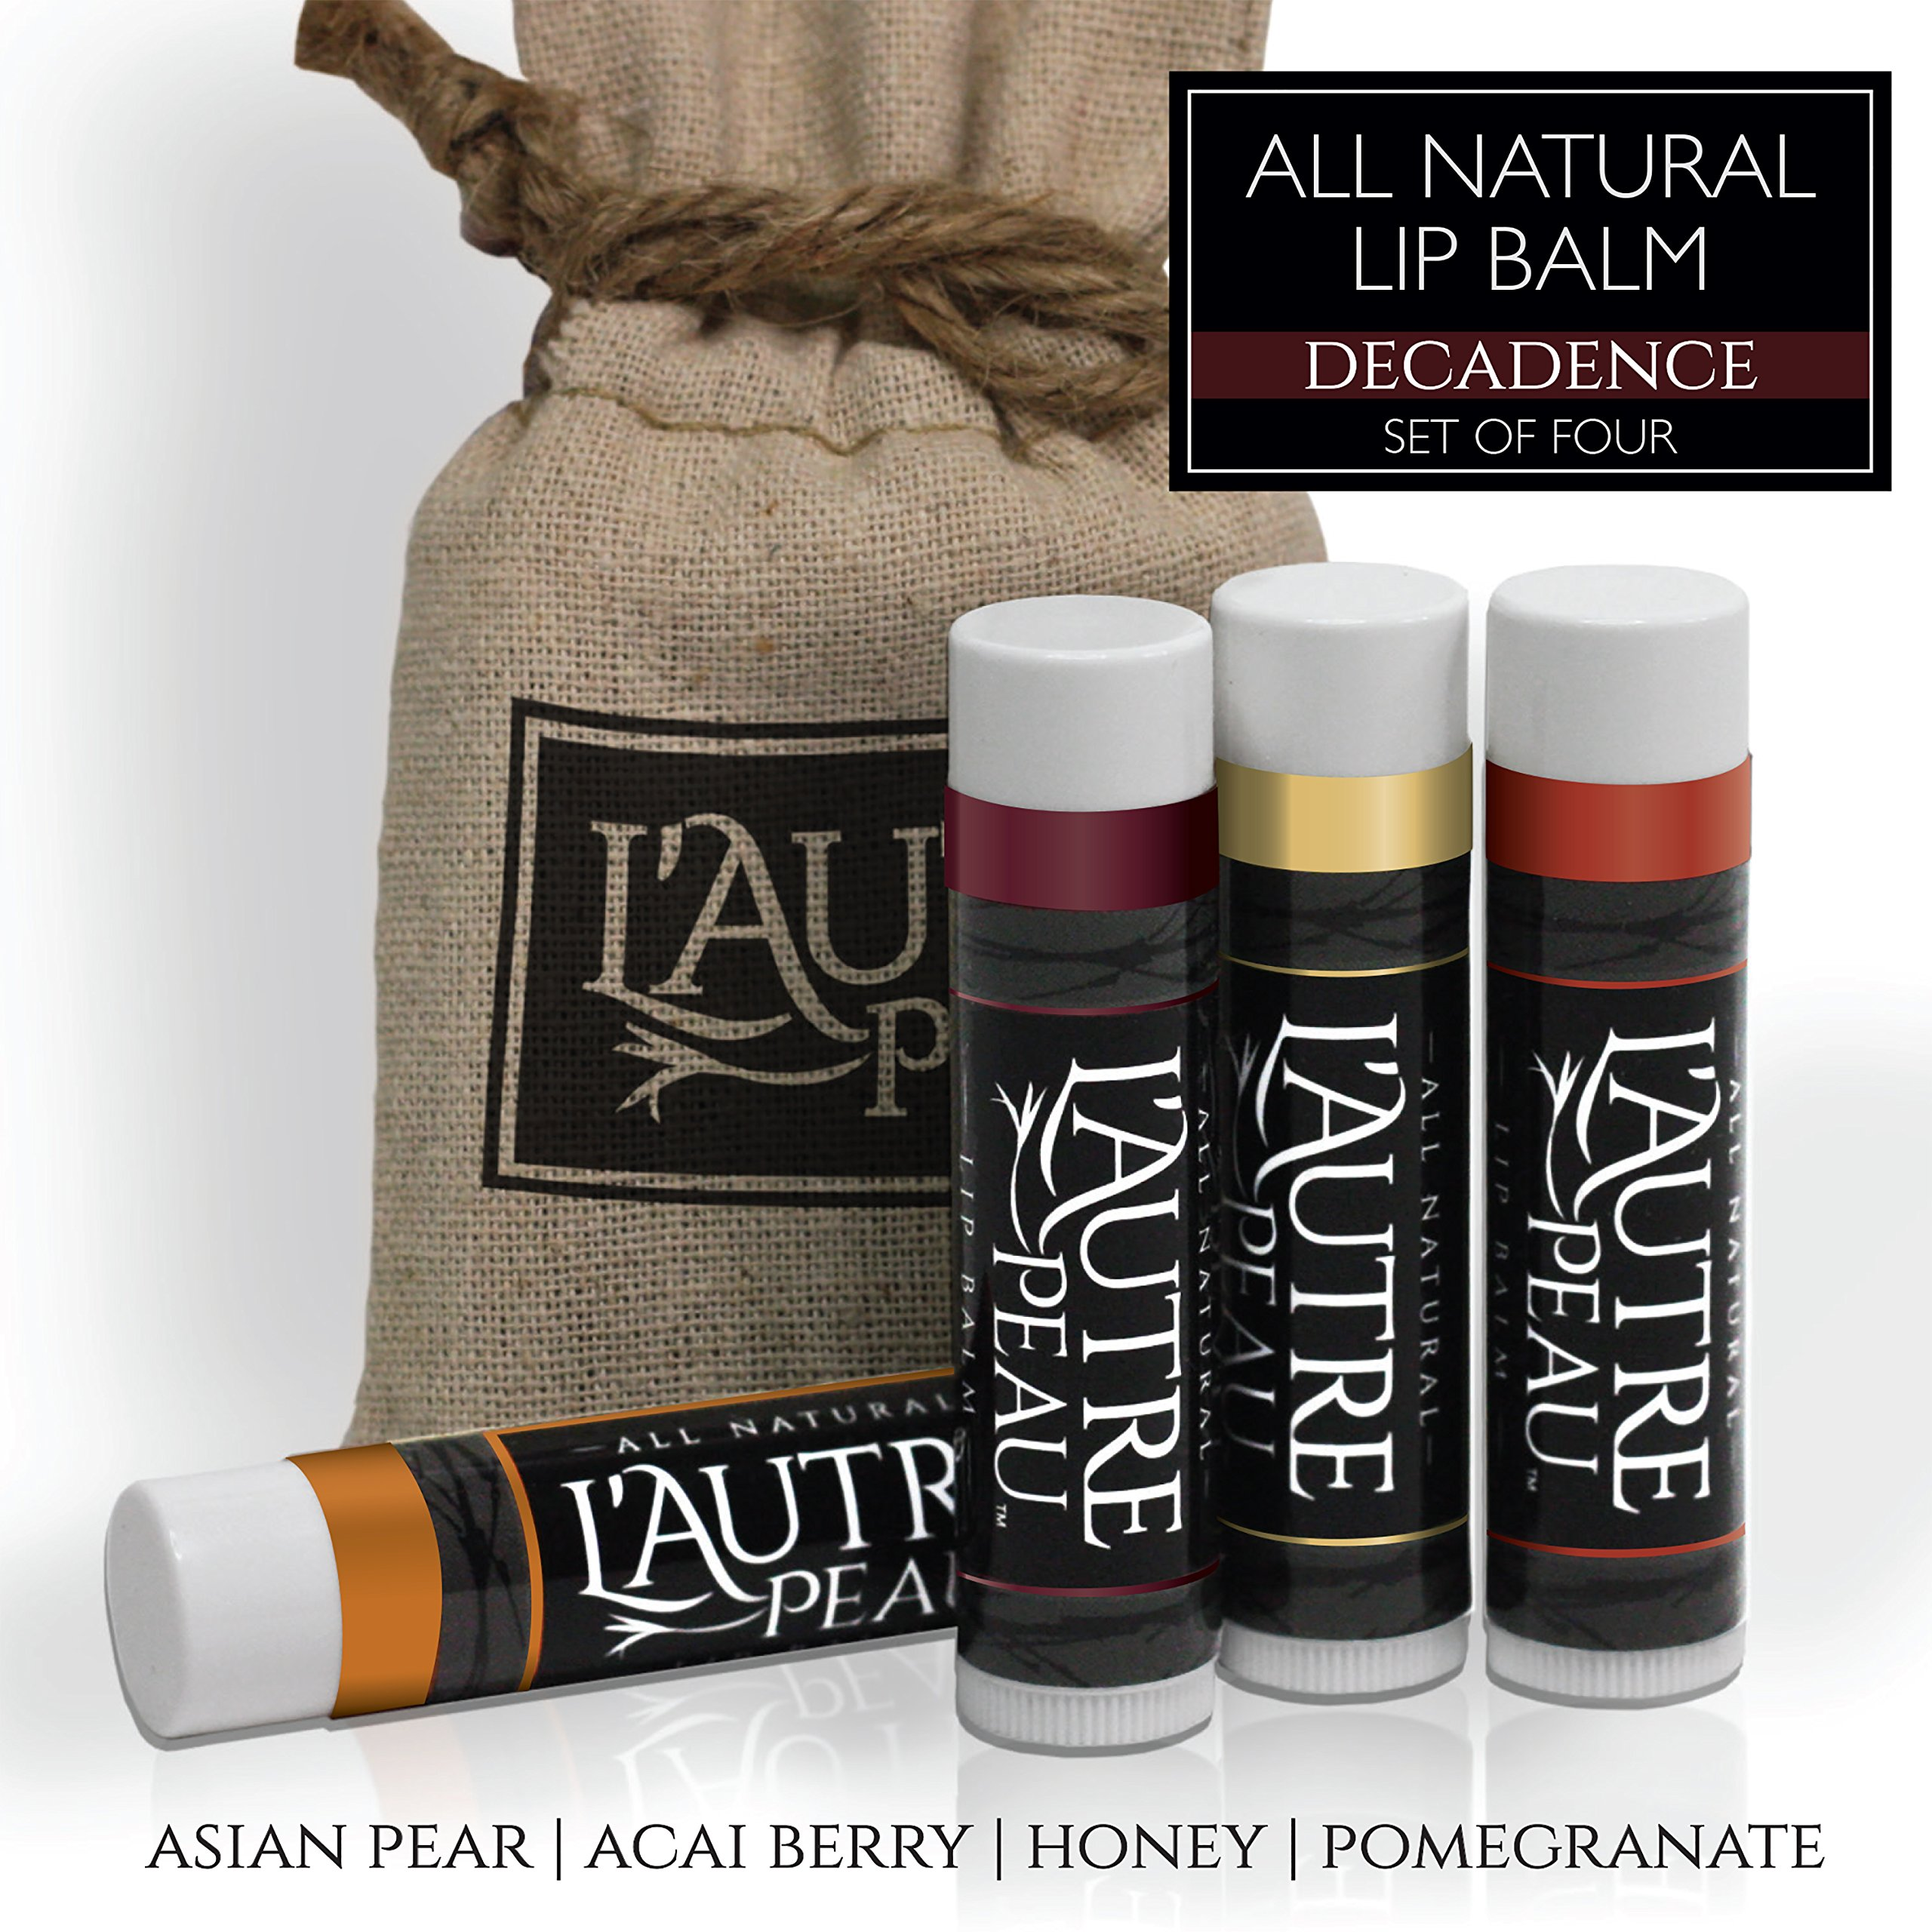 All Natural Luxury Lip Balm with Natural Beeswax by L'AUTRE PEAU - Dry Chapped Lips Treatment with Moisturizer | Decadence Gift Set | Asian Pear, Acai Berry, Honey & Pomegranate (4 Pack)